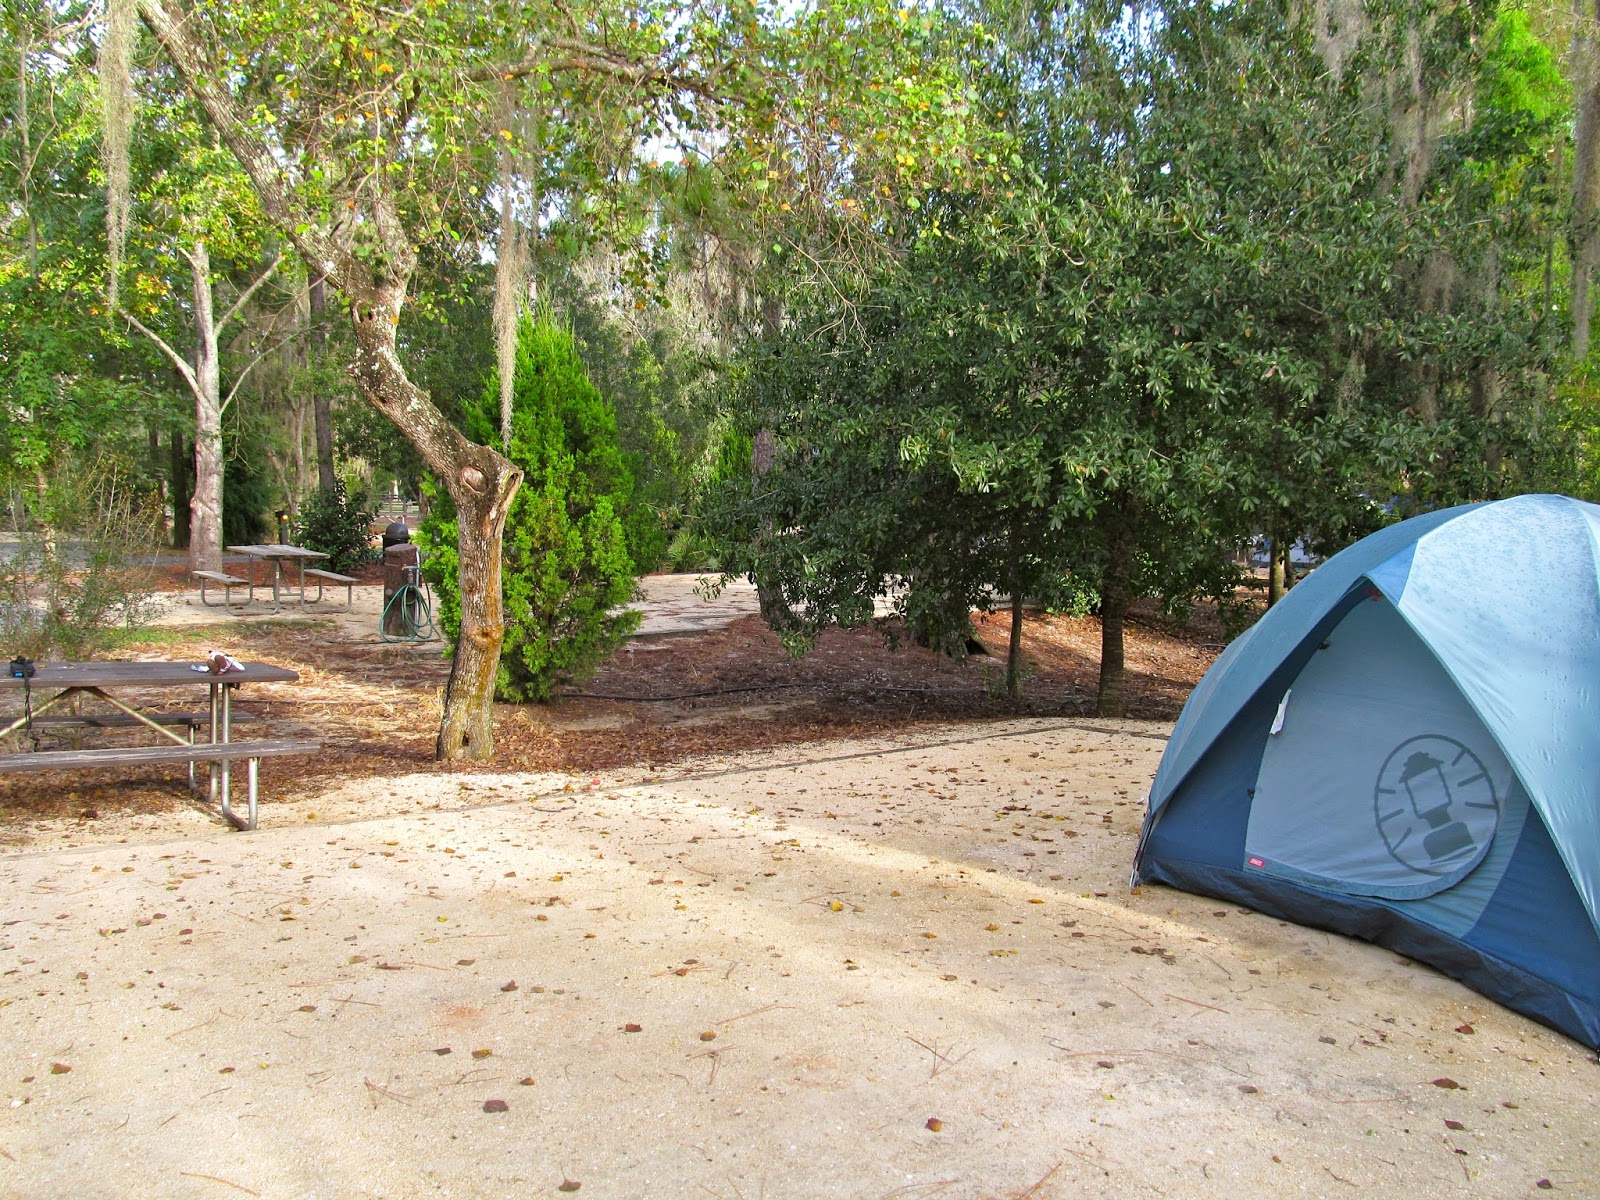 Our Outdoor Travel Stories Tent Camping At Ft Wilderness